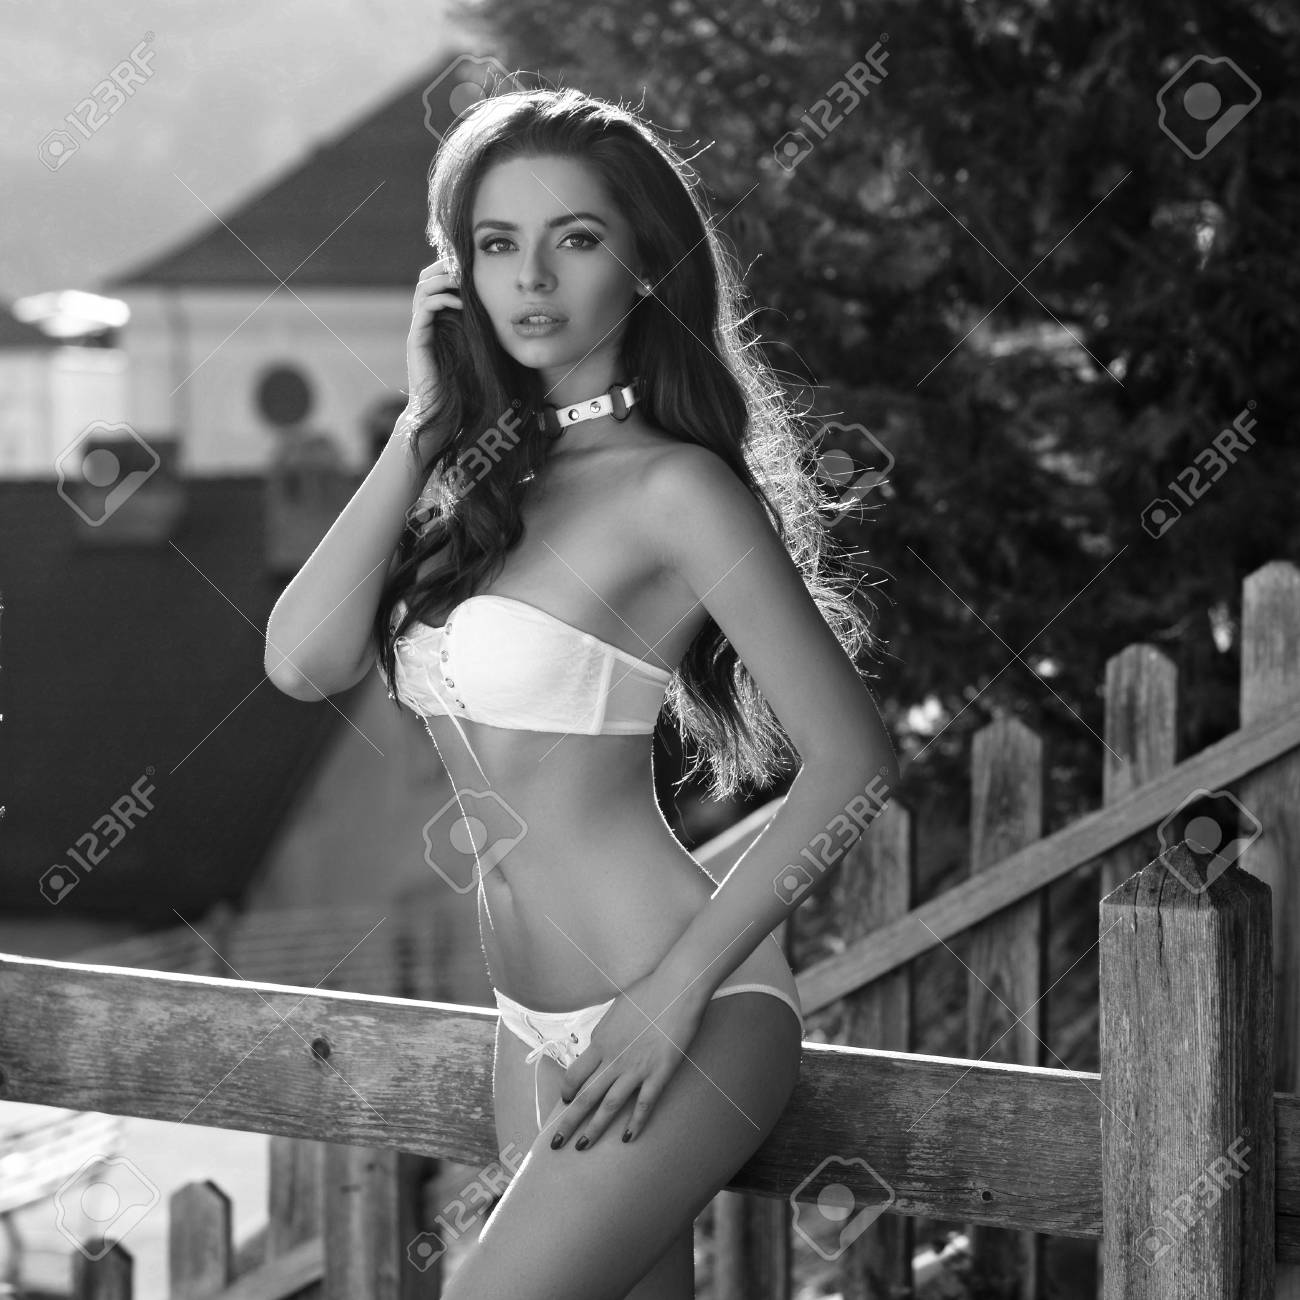 61c16cf57e Sexy and attractive young woman dressed in white bra and panties standing  against wooden fence